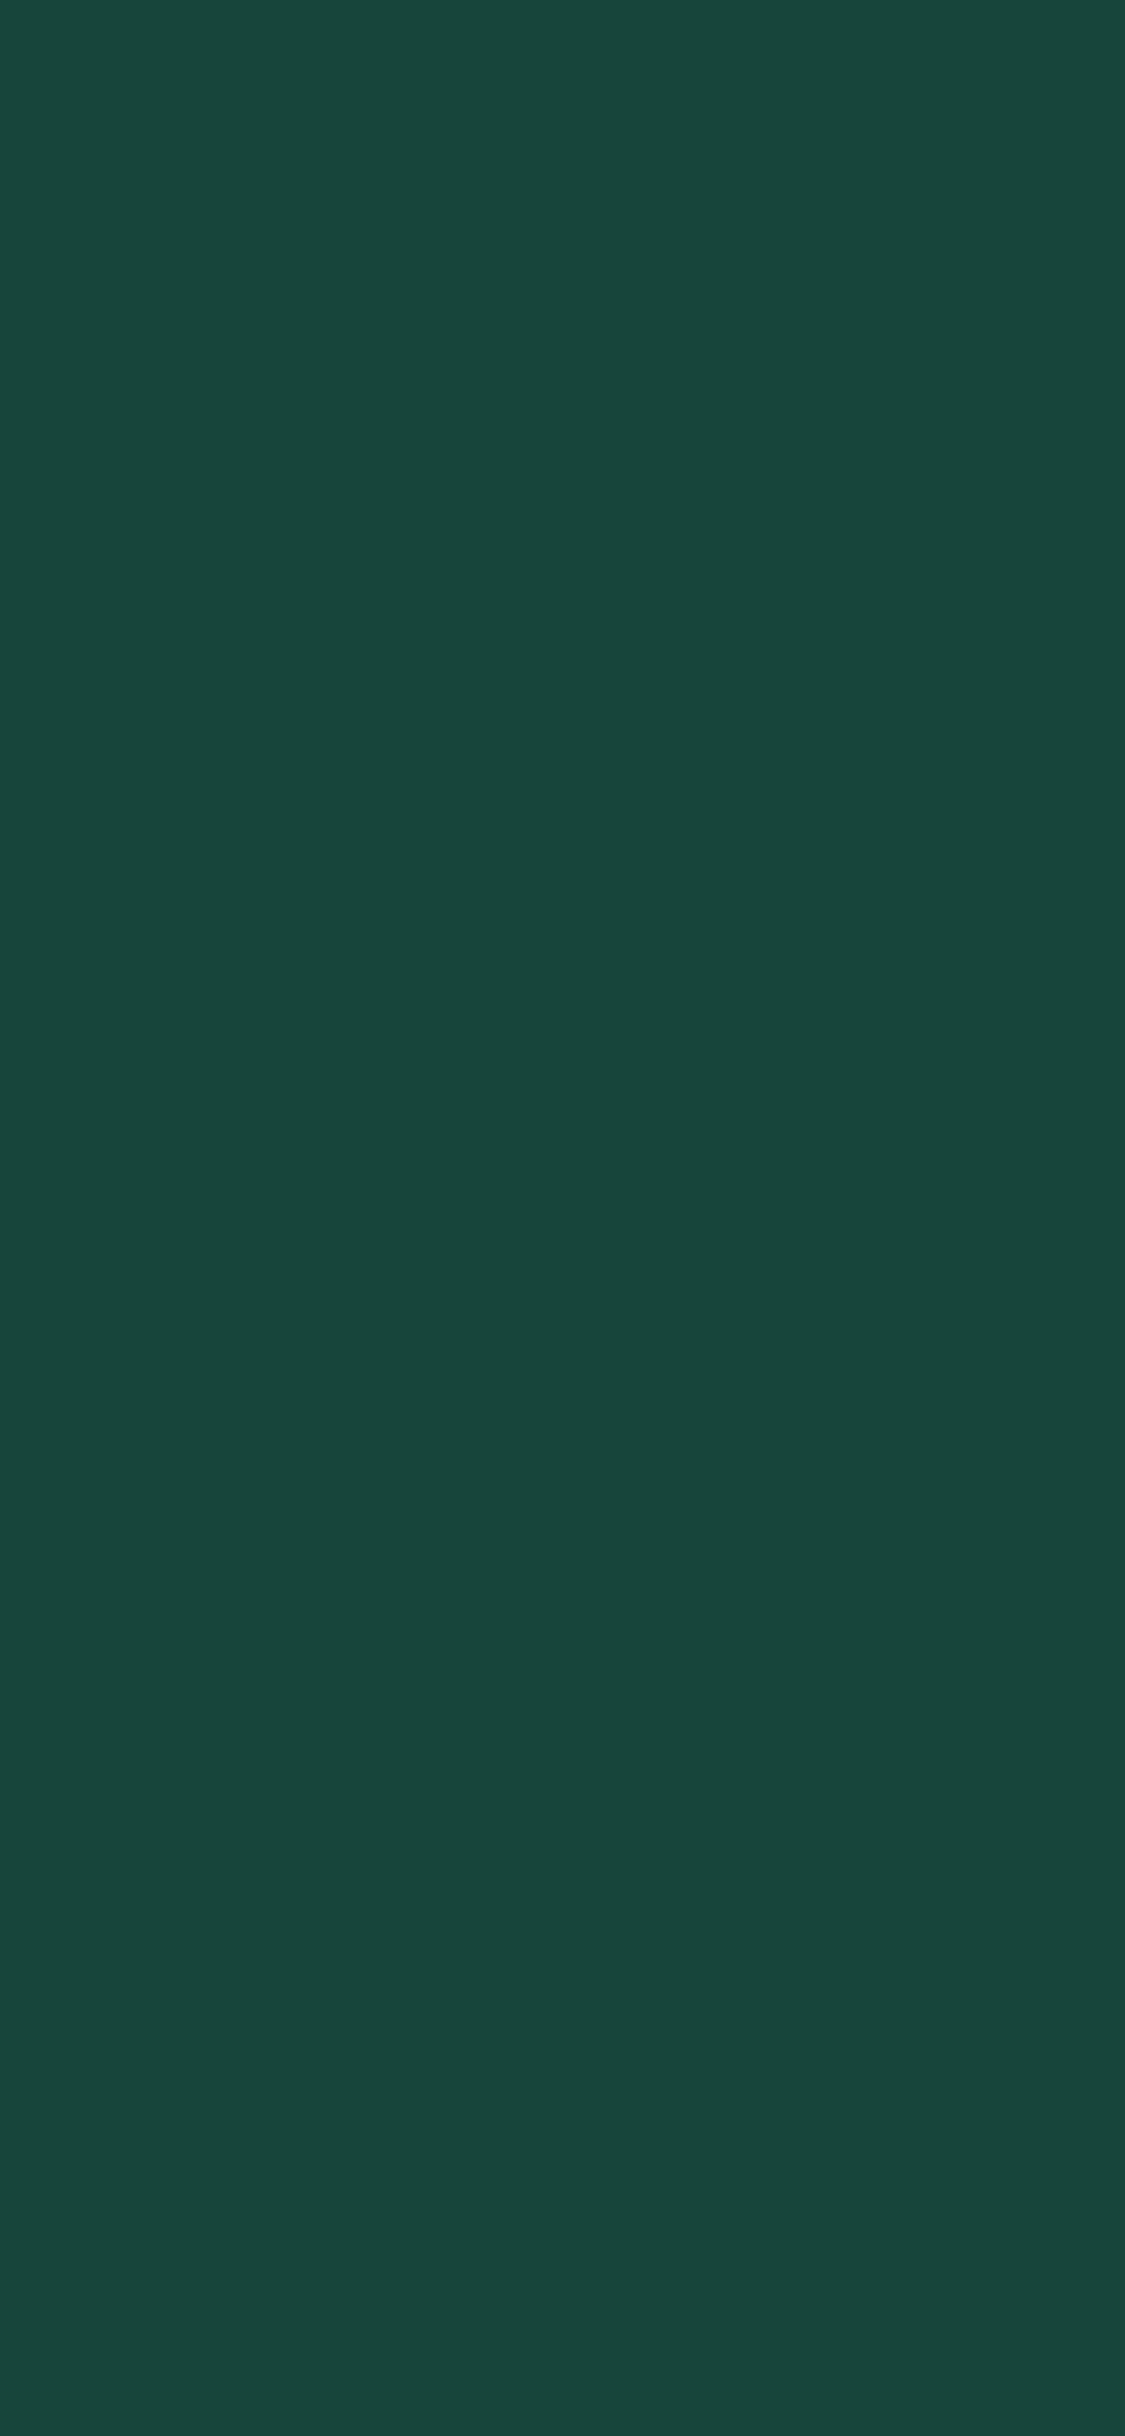 1125x2436 MSU Green Solid Color Background